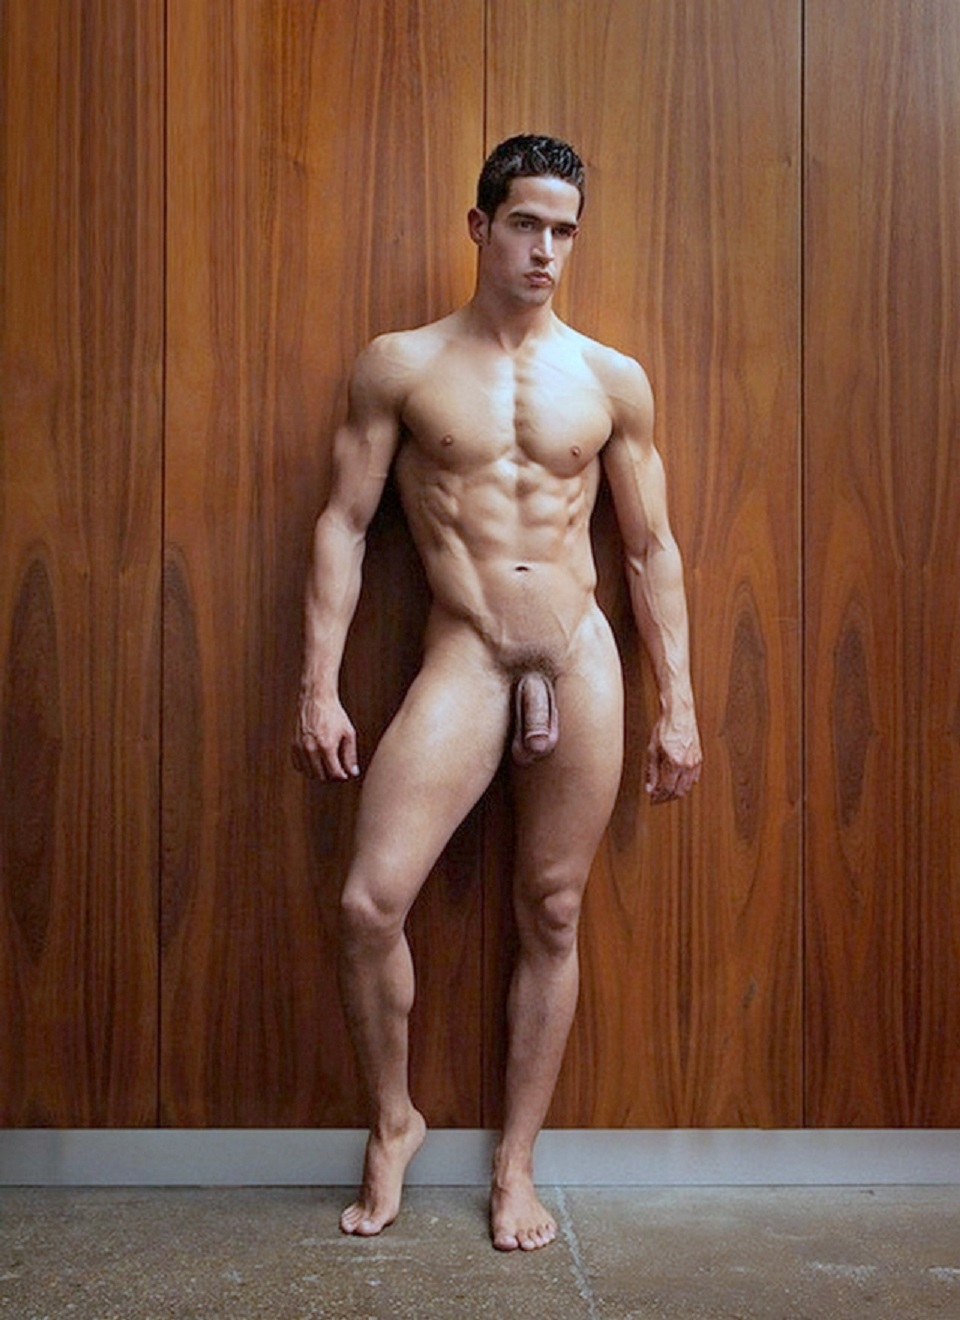 Naked sportsmen in the showers